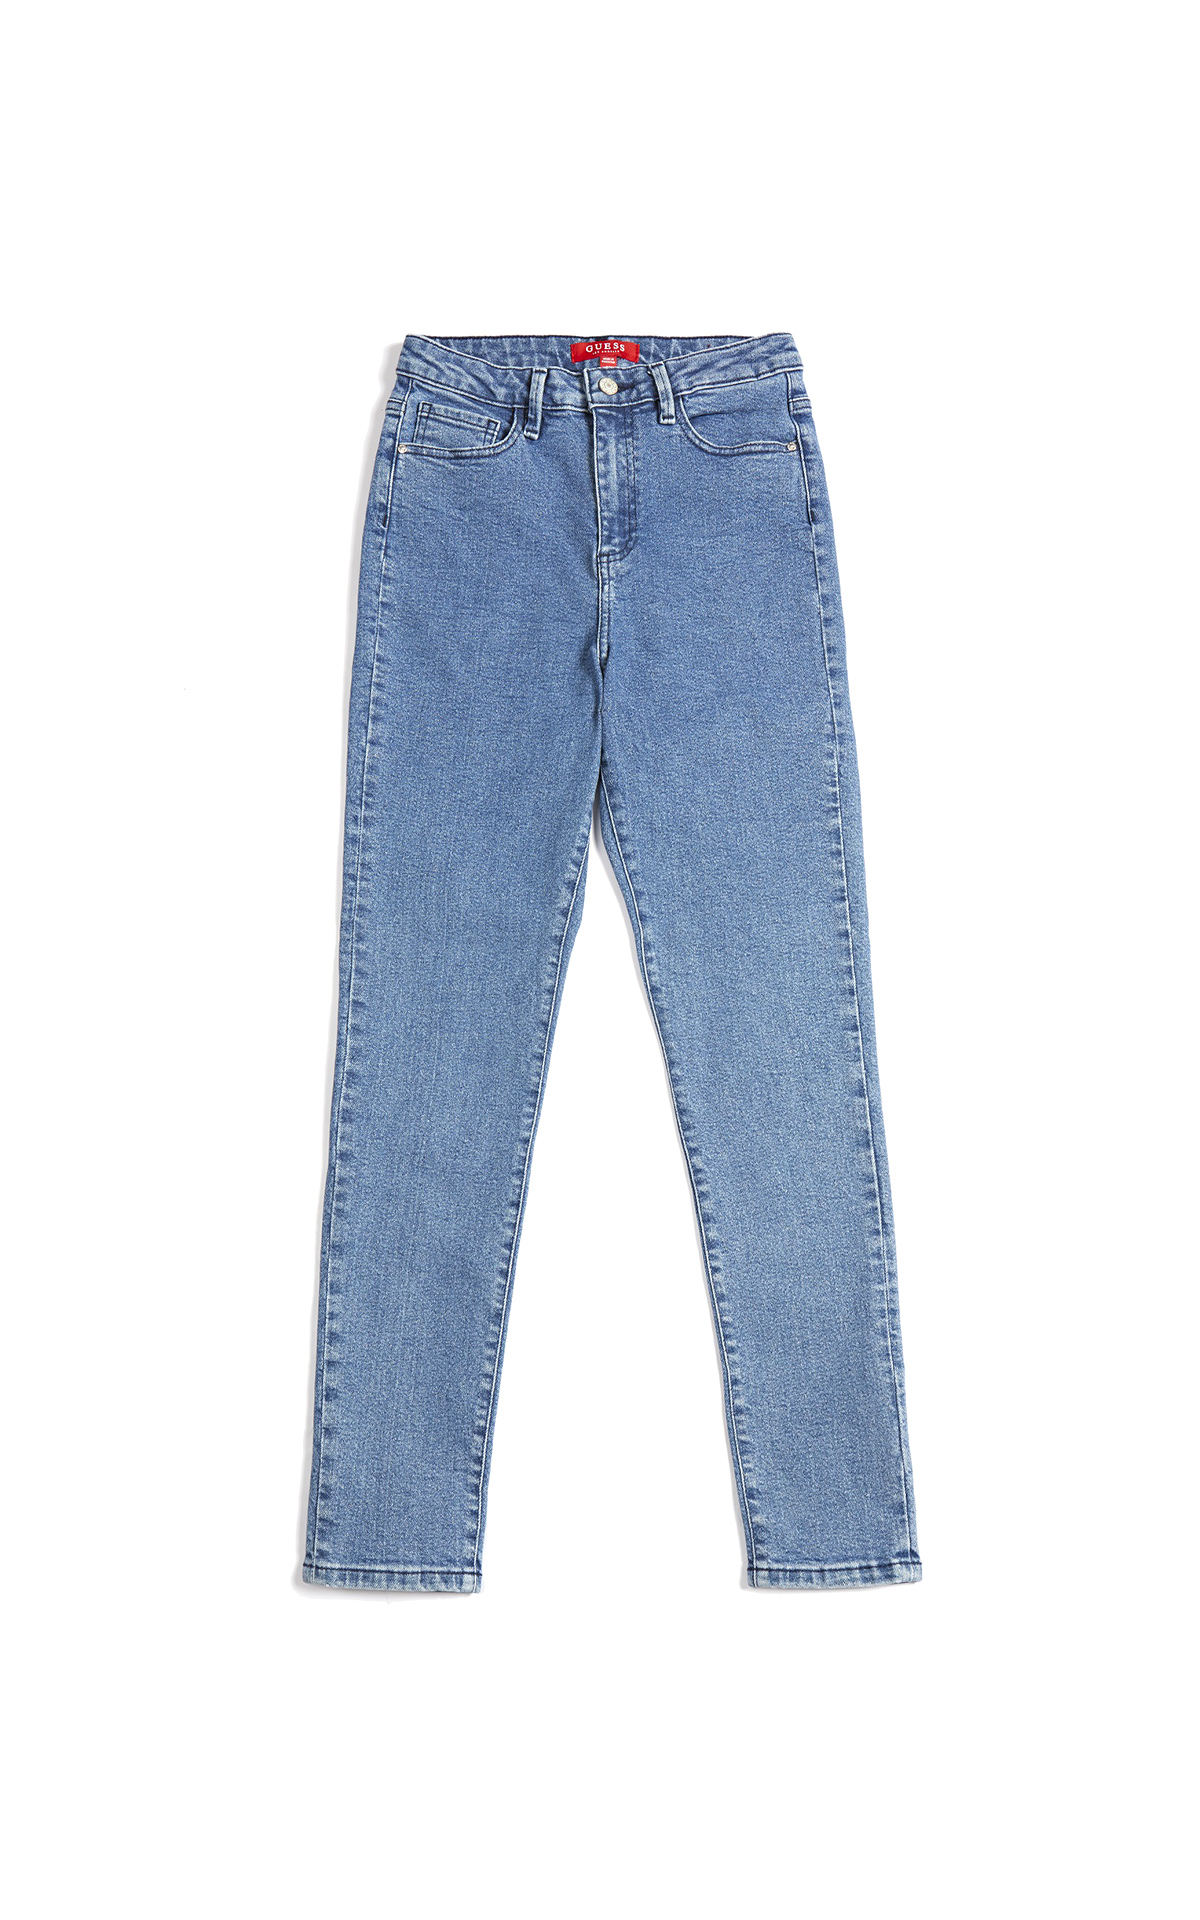 Light blue denim jeans Guess